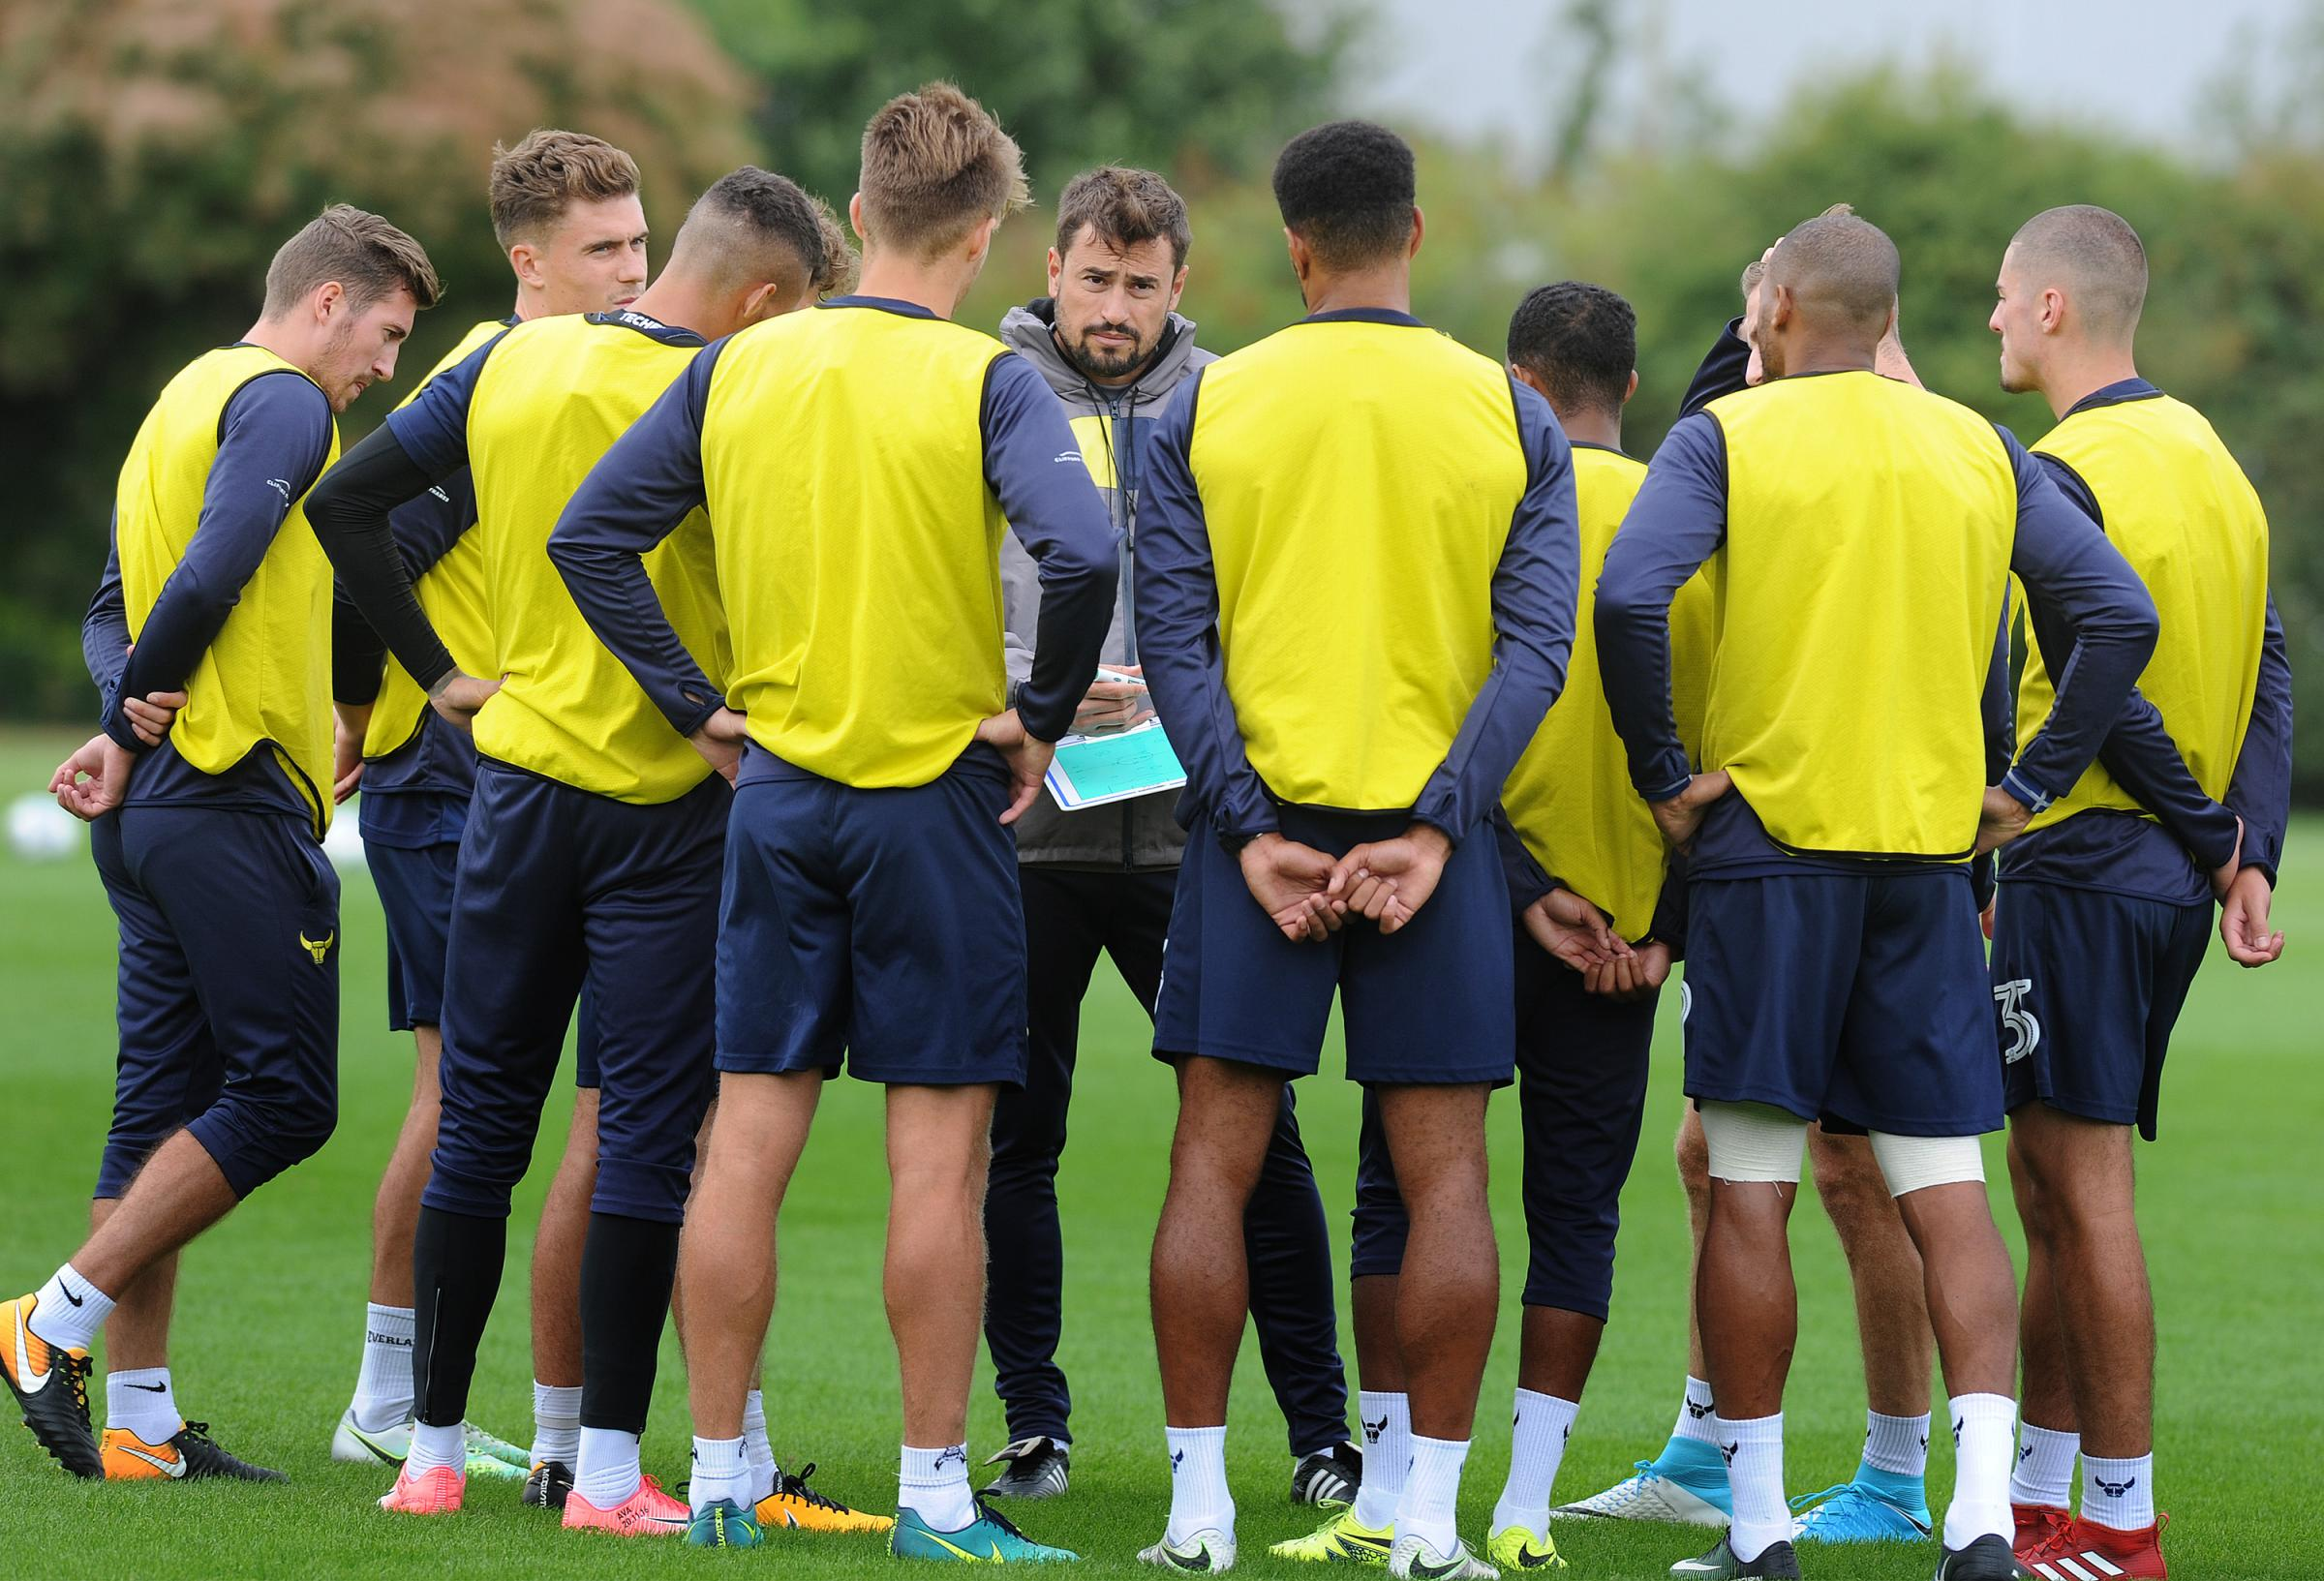 Manager Pep Clotet talks to his Oxford United players during pre-season. As a result of the packed festive fixture list, the squad will spend less time on the training pitch in the next month  Picture: Jon Lewis